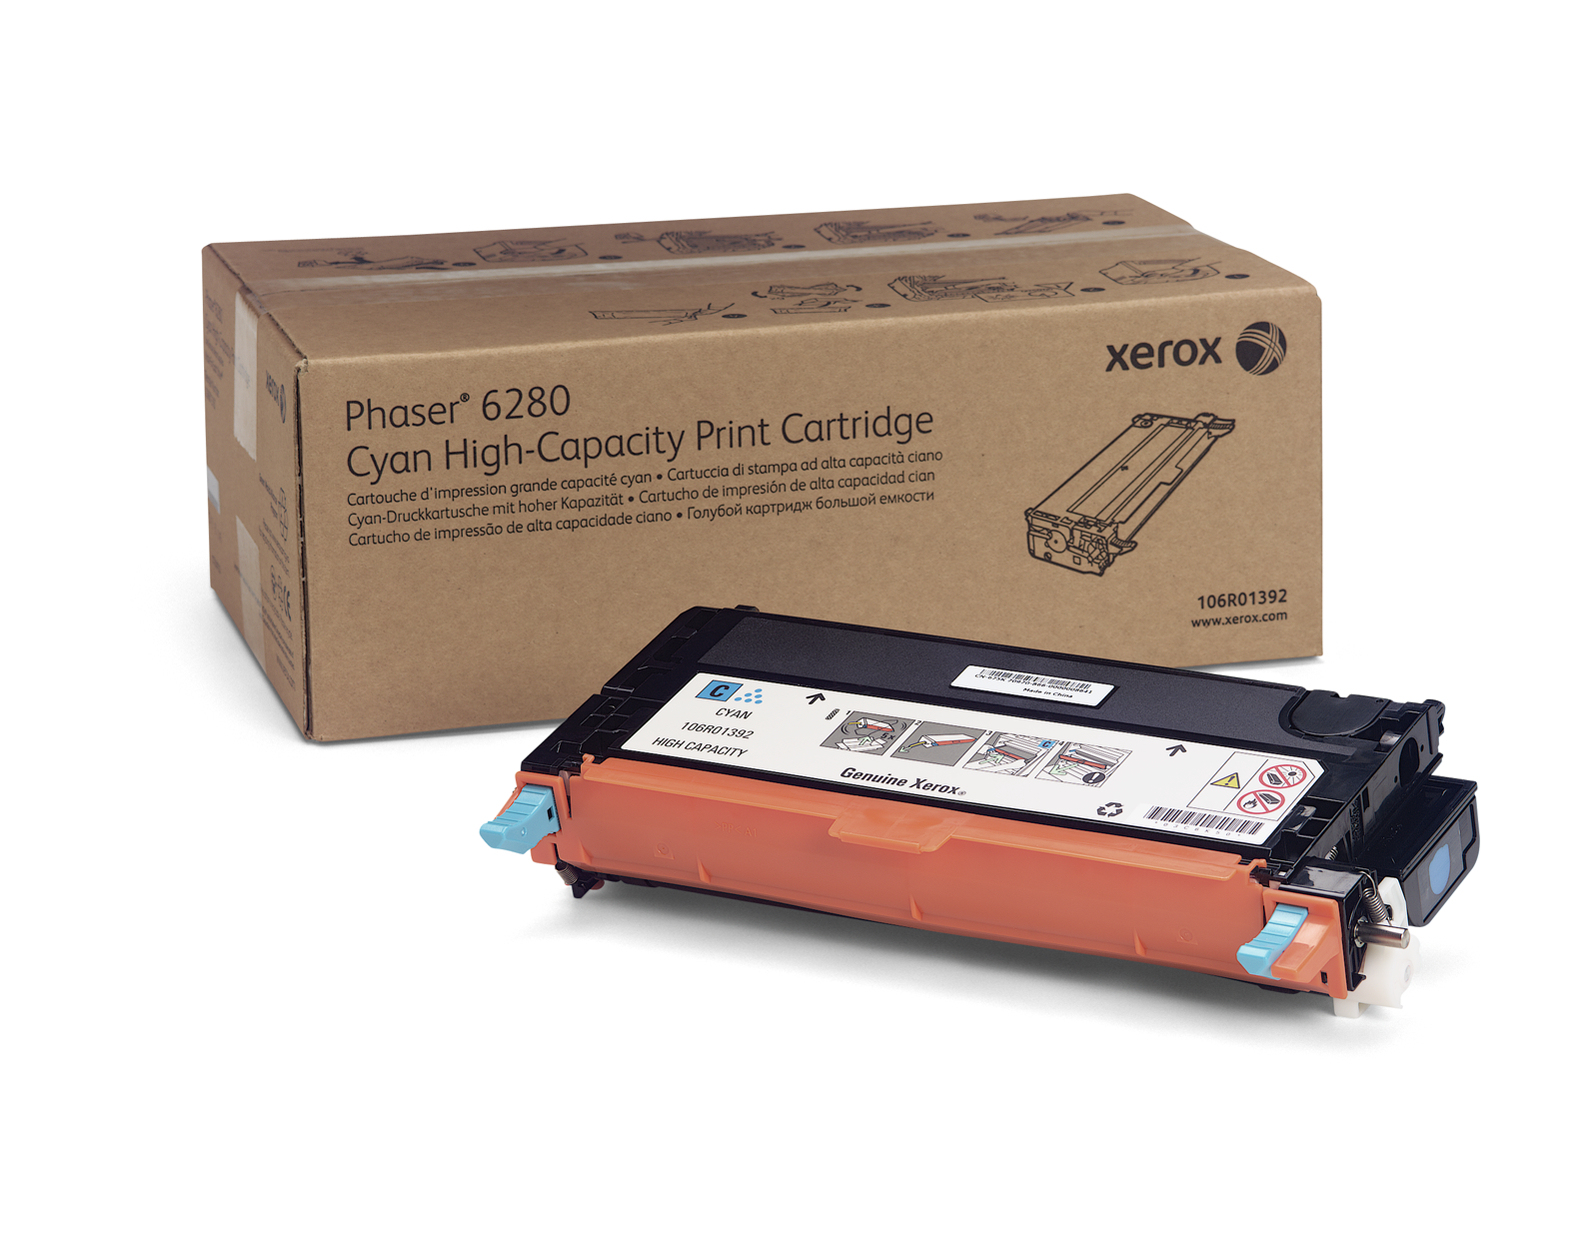 Xer106r01392   Xerox Phaser 6280 H/c Cyan     Xerox Phaser 6280 H/c Cyan Toner 6kpages                     - UF01